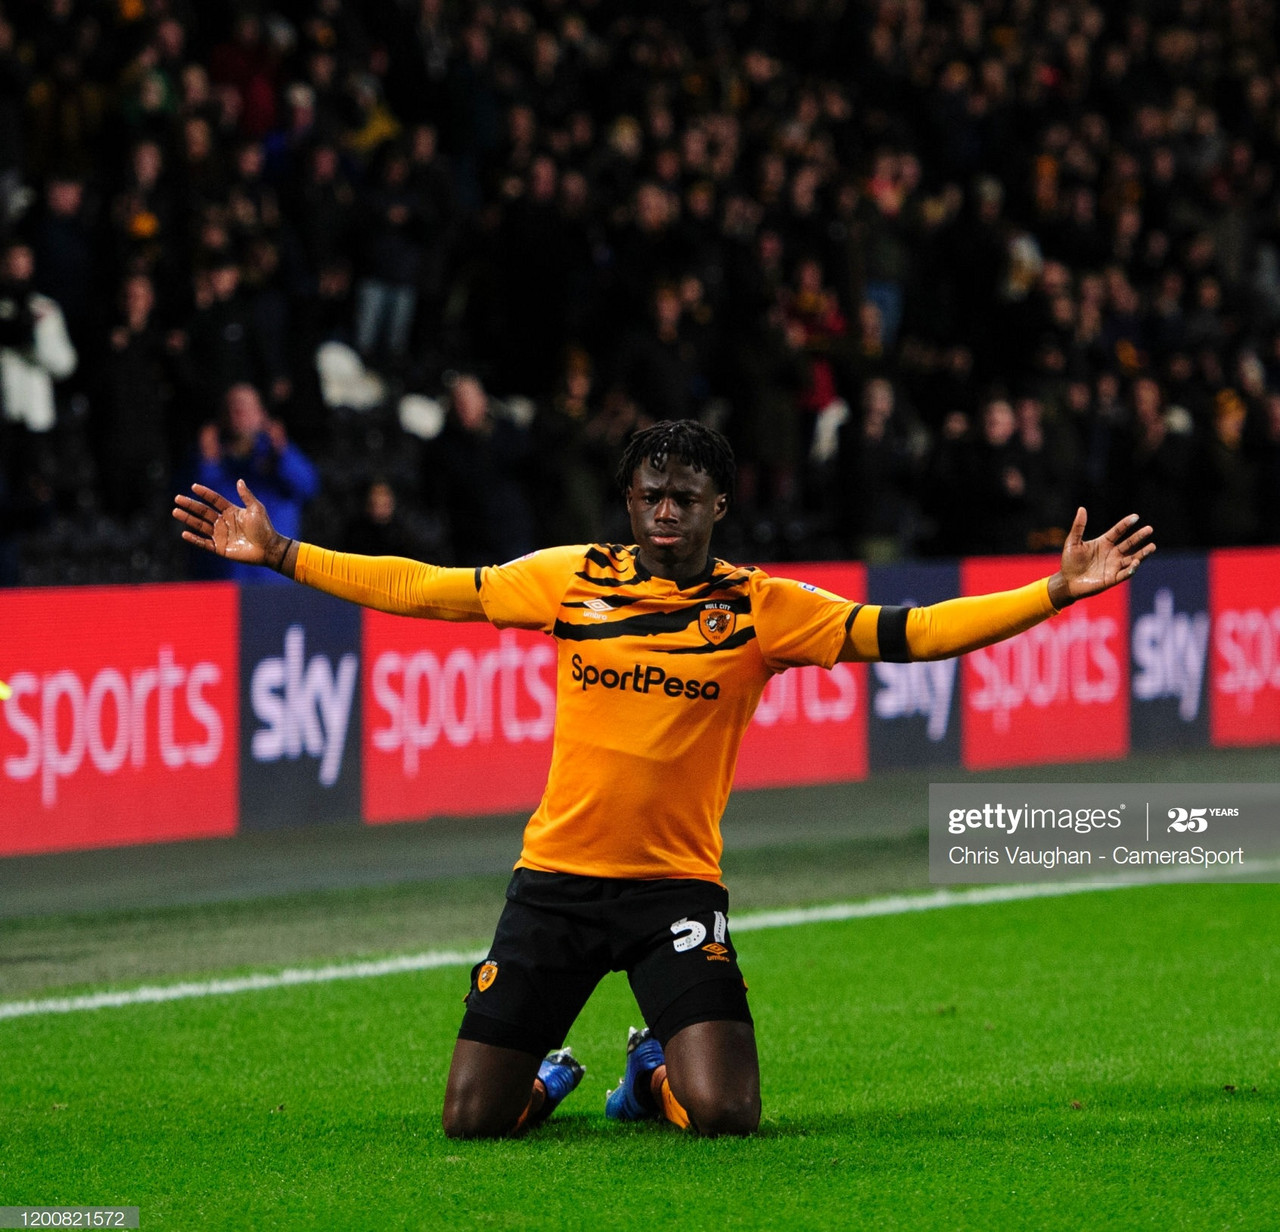 Leo Da Silva: The player to make Hull City tick?